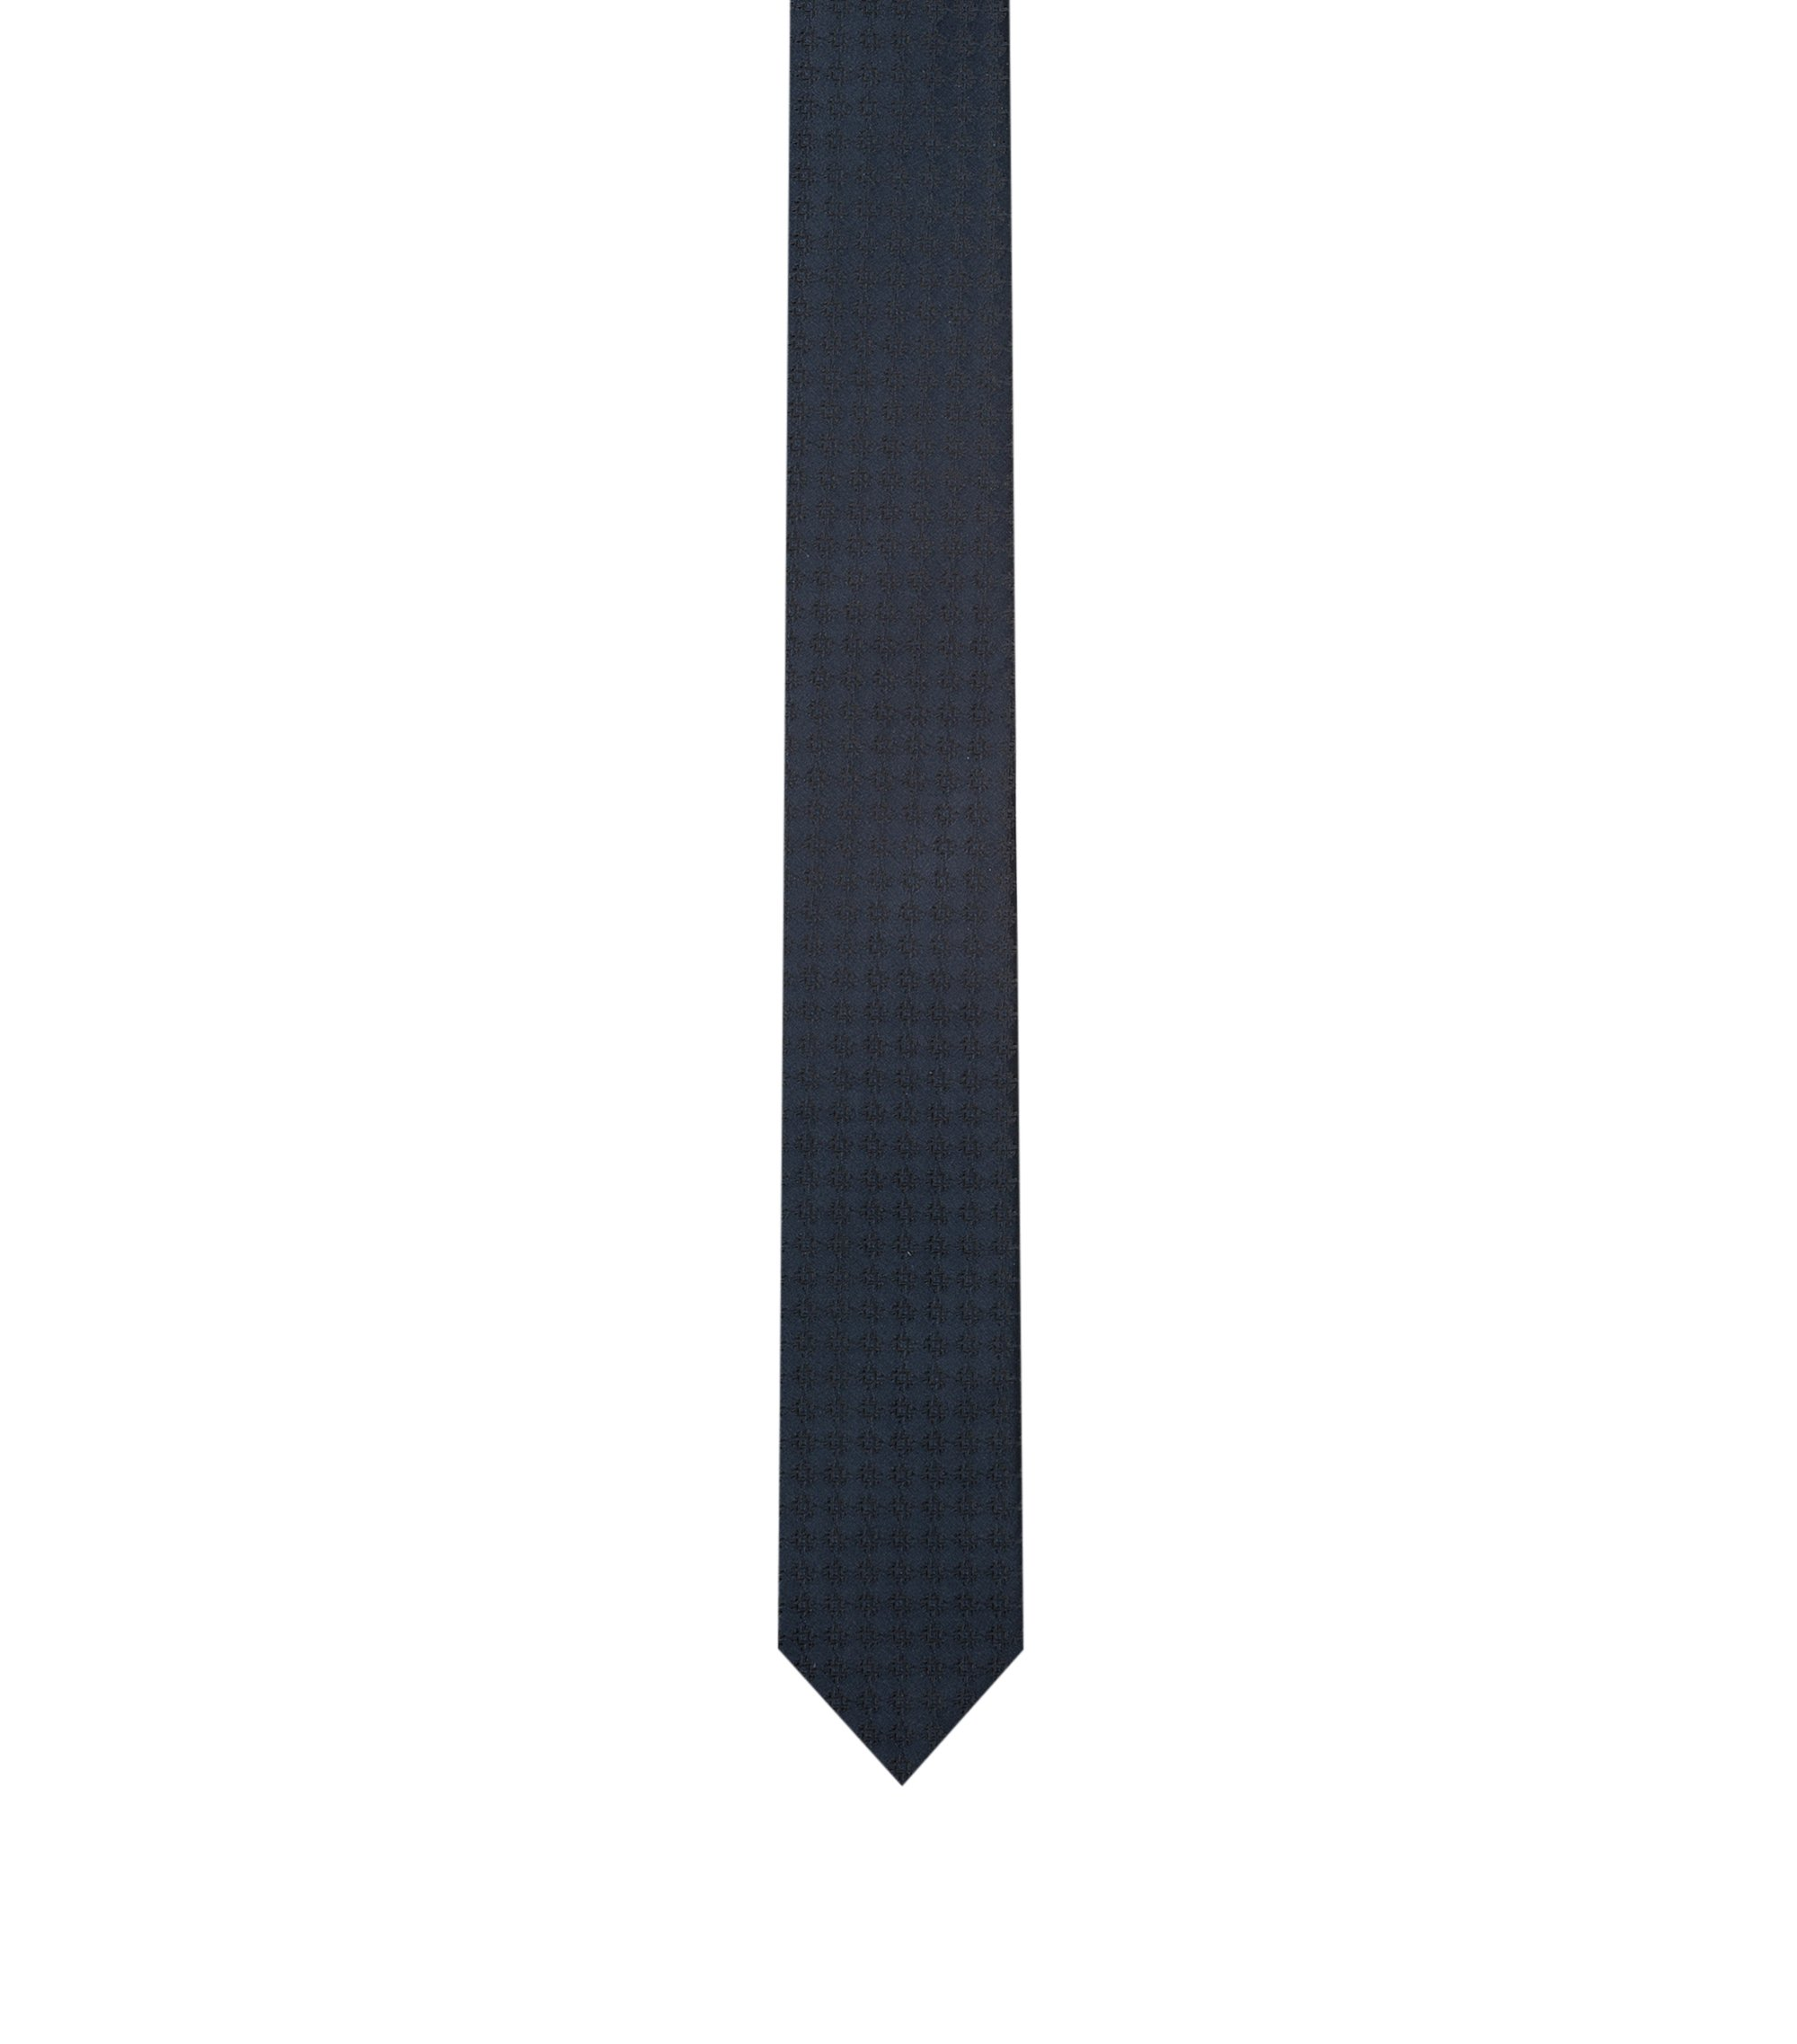 Silk-jacquard tie with textured pattern, Patterned